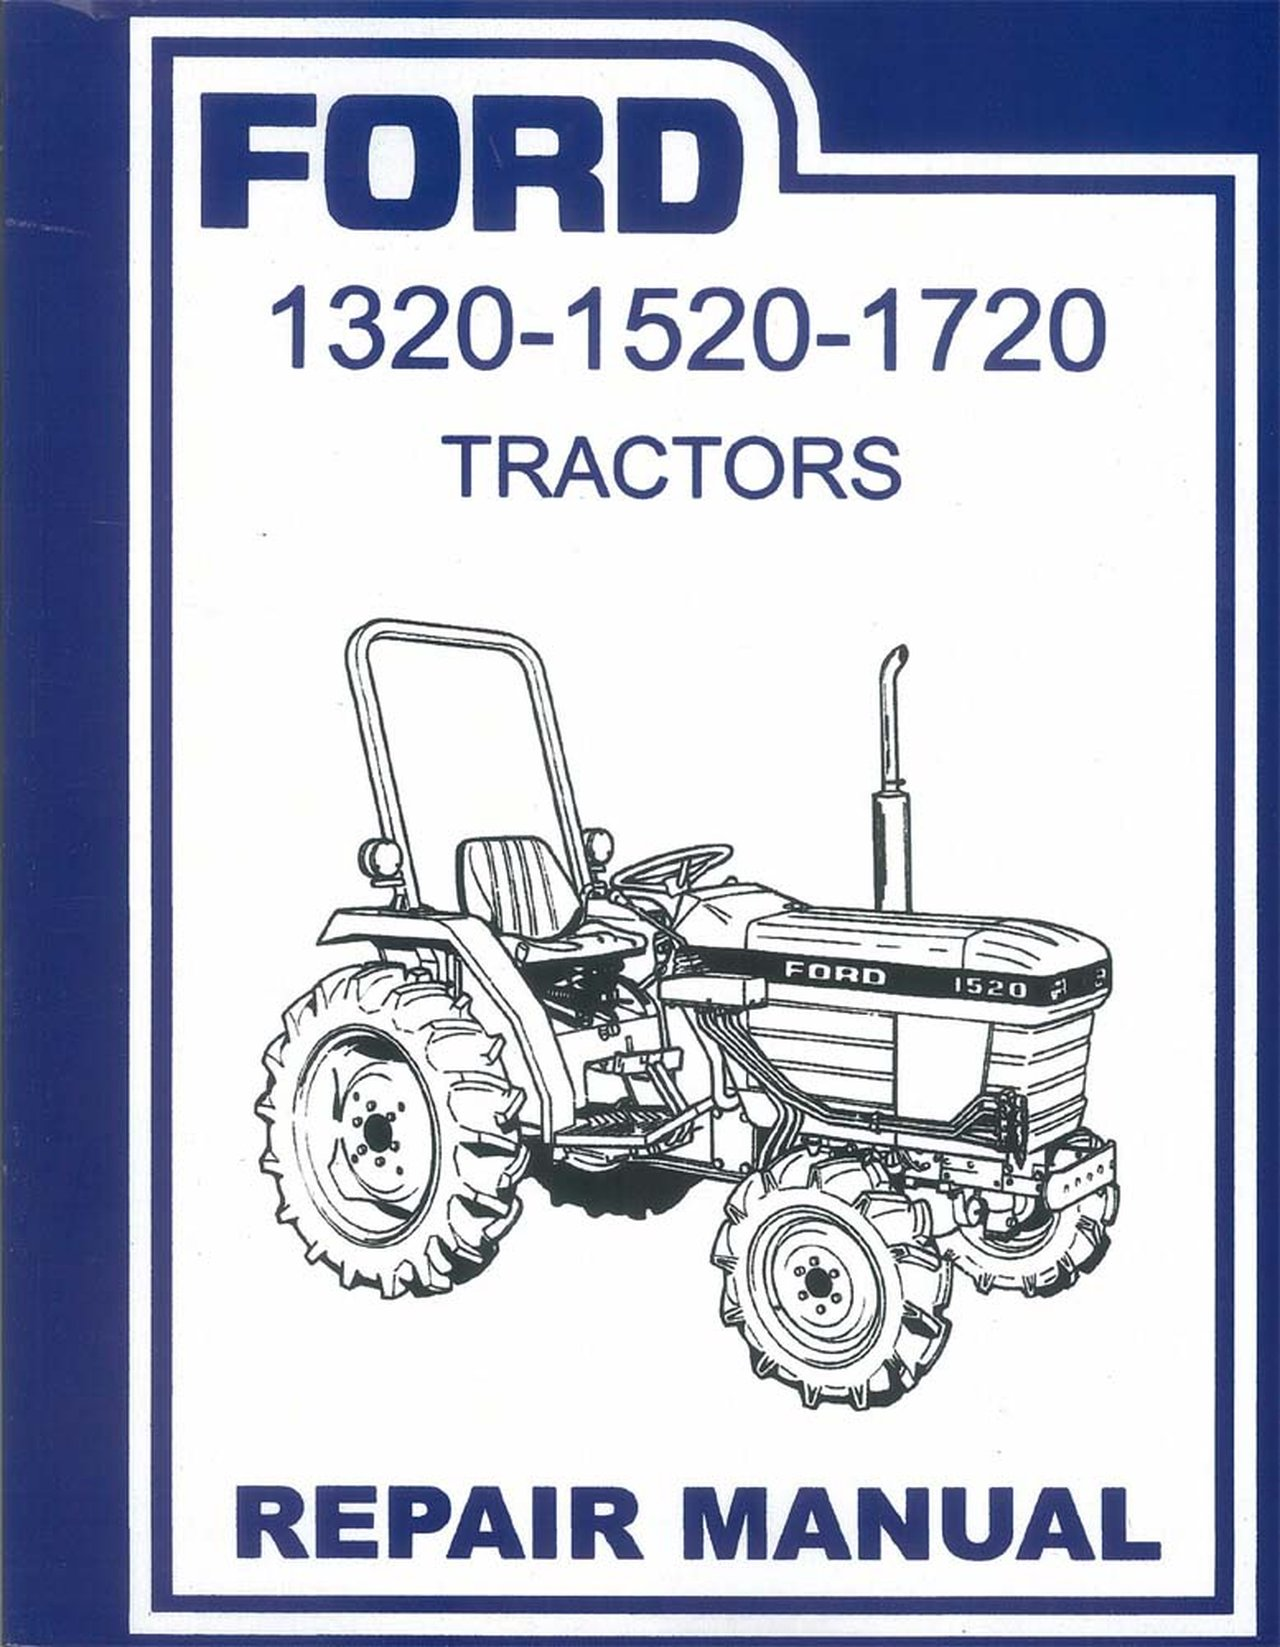 Oem Repair Maintenance Shop Manual Bound Ford Tractor 1320